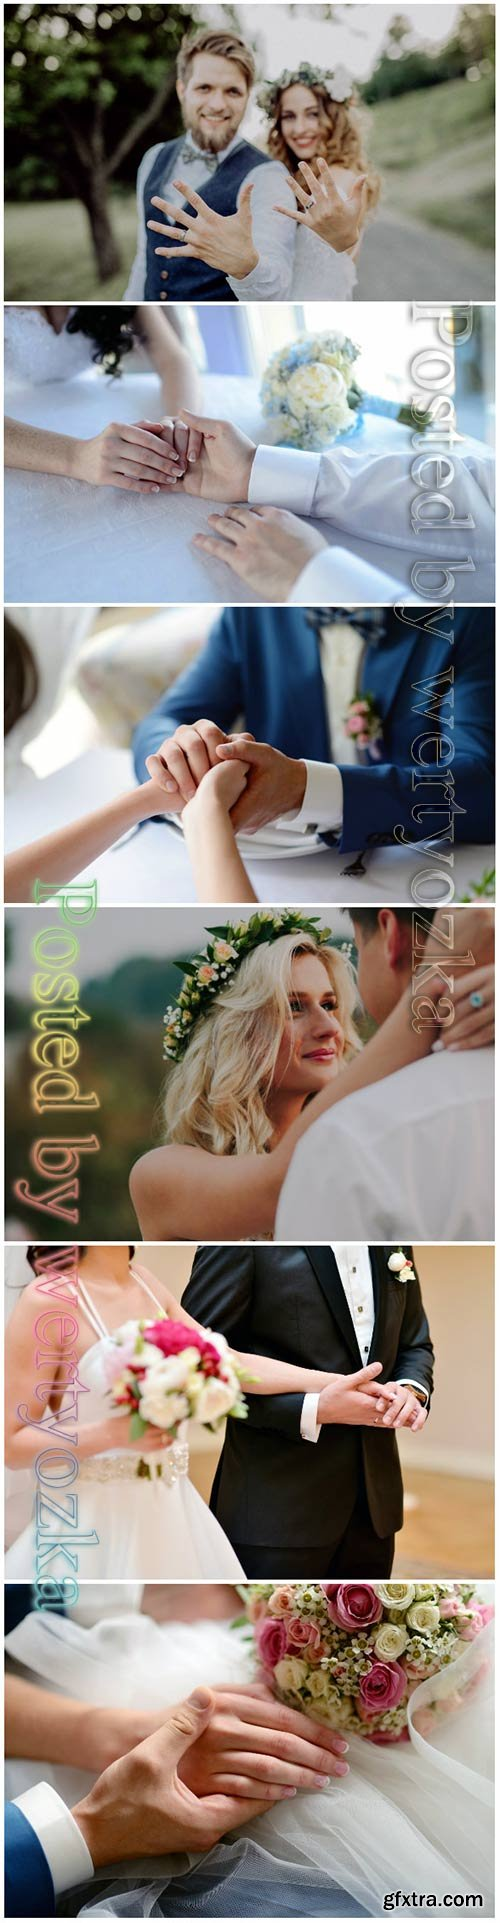 Wedding couple beautiful stock photo